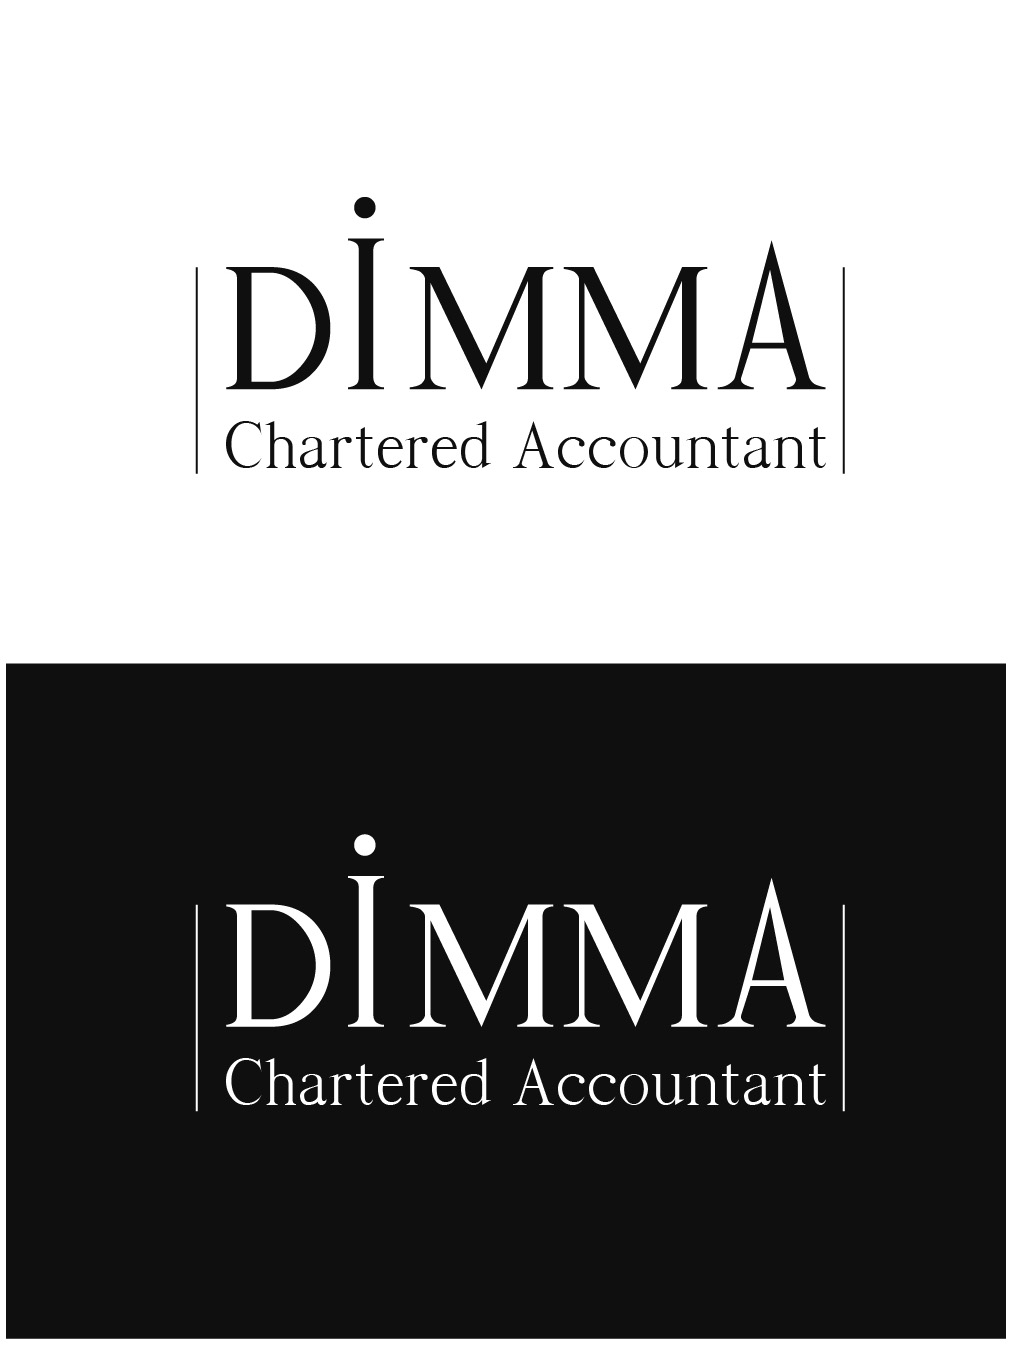 Logo Design by gkonta - Entry No. 35 in the Logo Design Contest Creative Logo Design for Dimma Chartered Accountant.